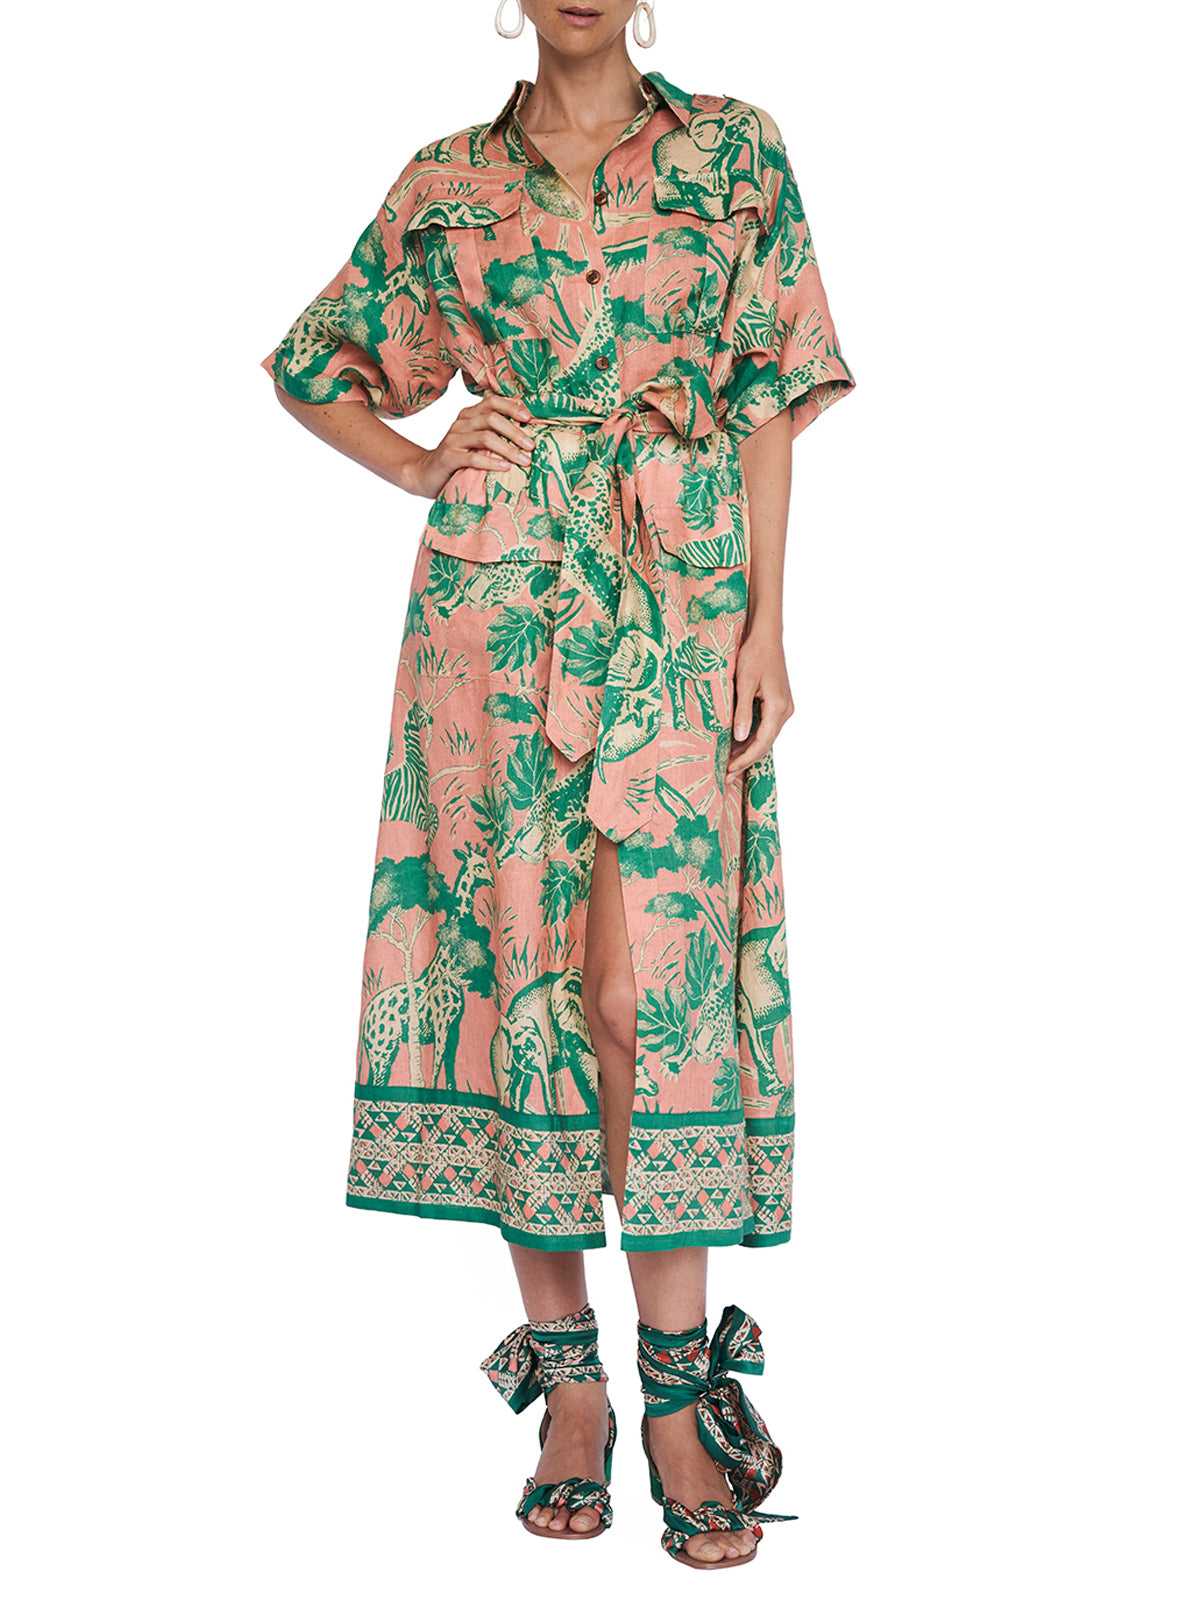 Desta Safari Dress